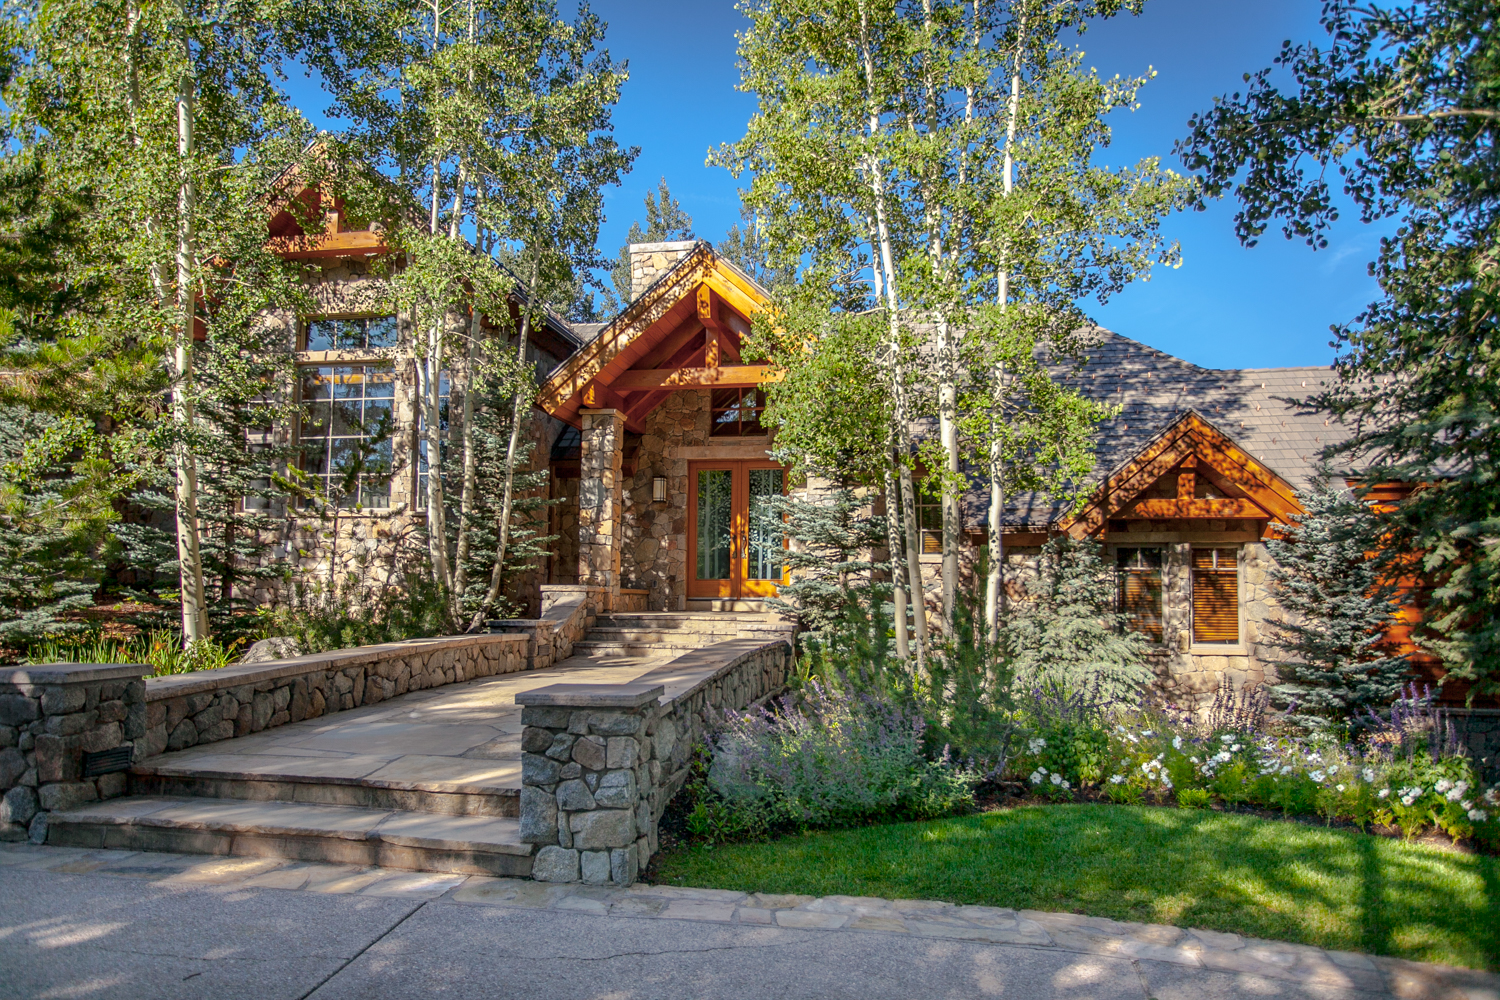 Aspen Architectural photographer